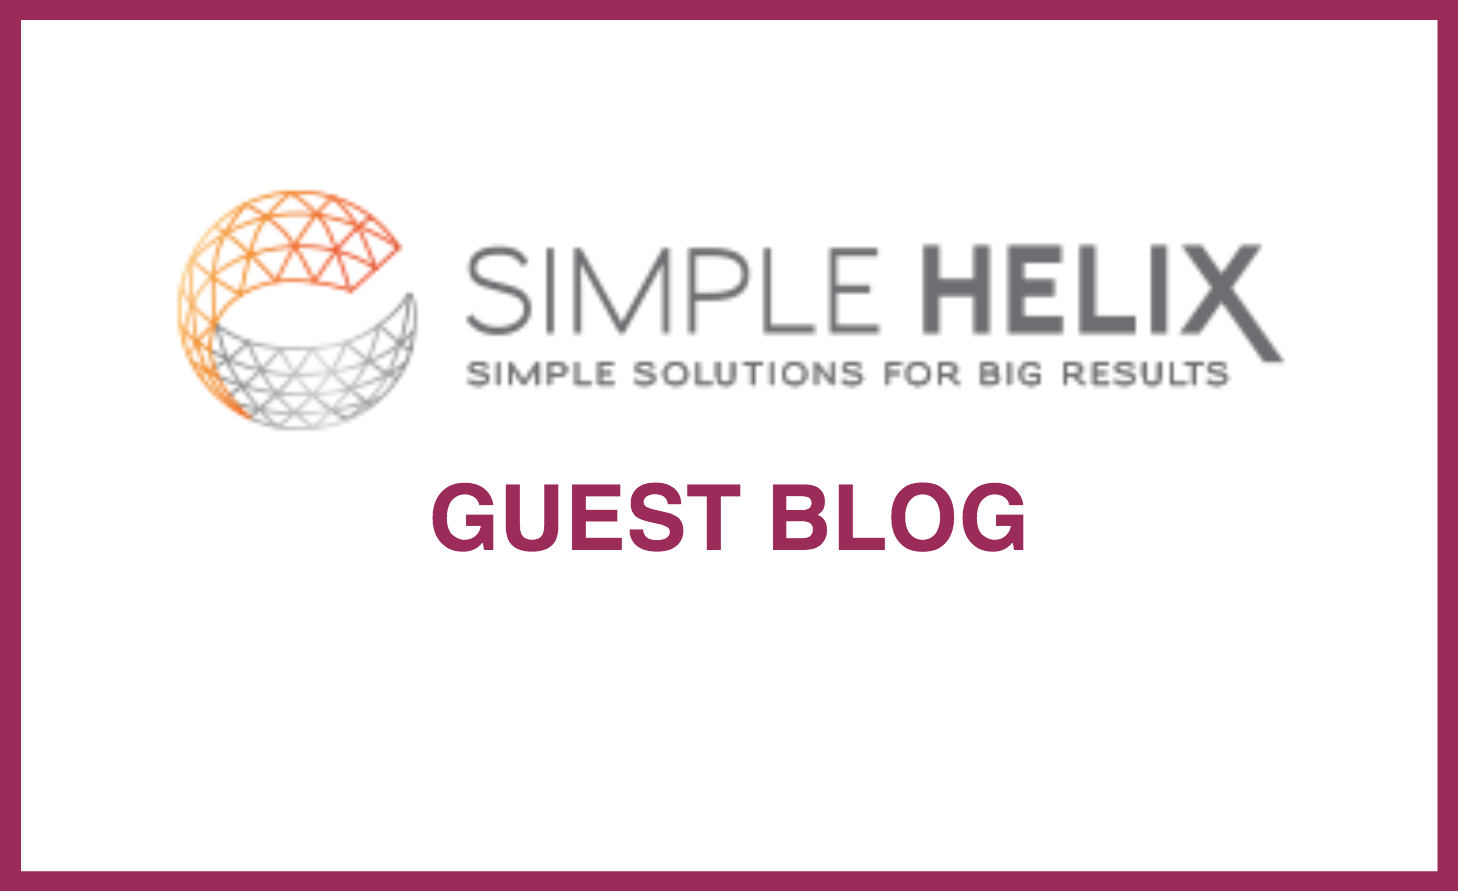 simple_helix_guest_blog_1.png